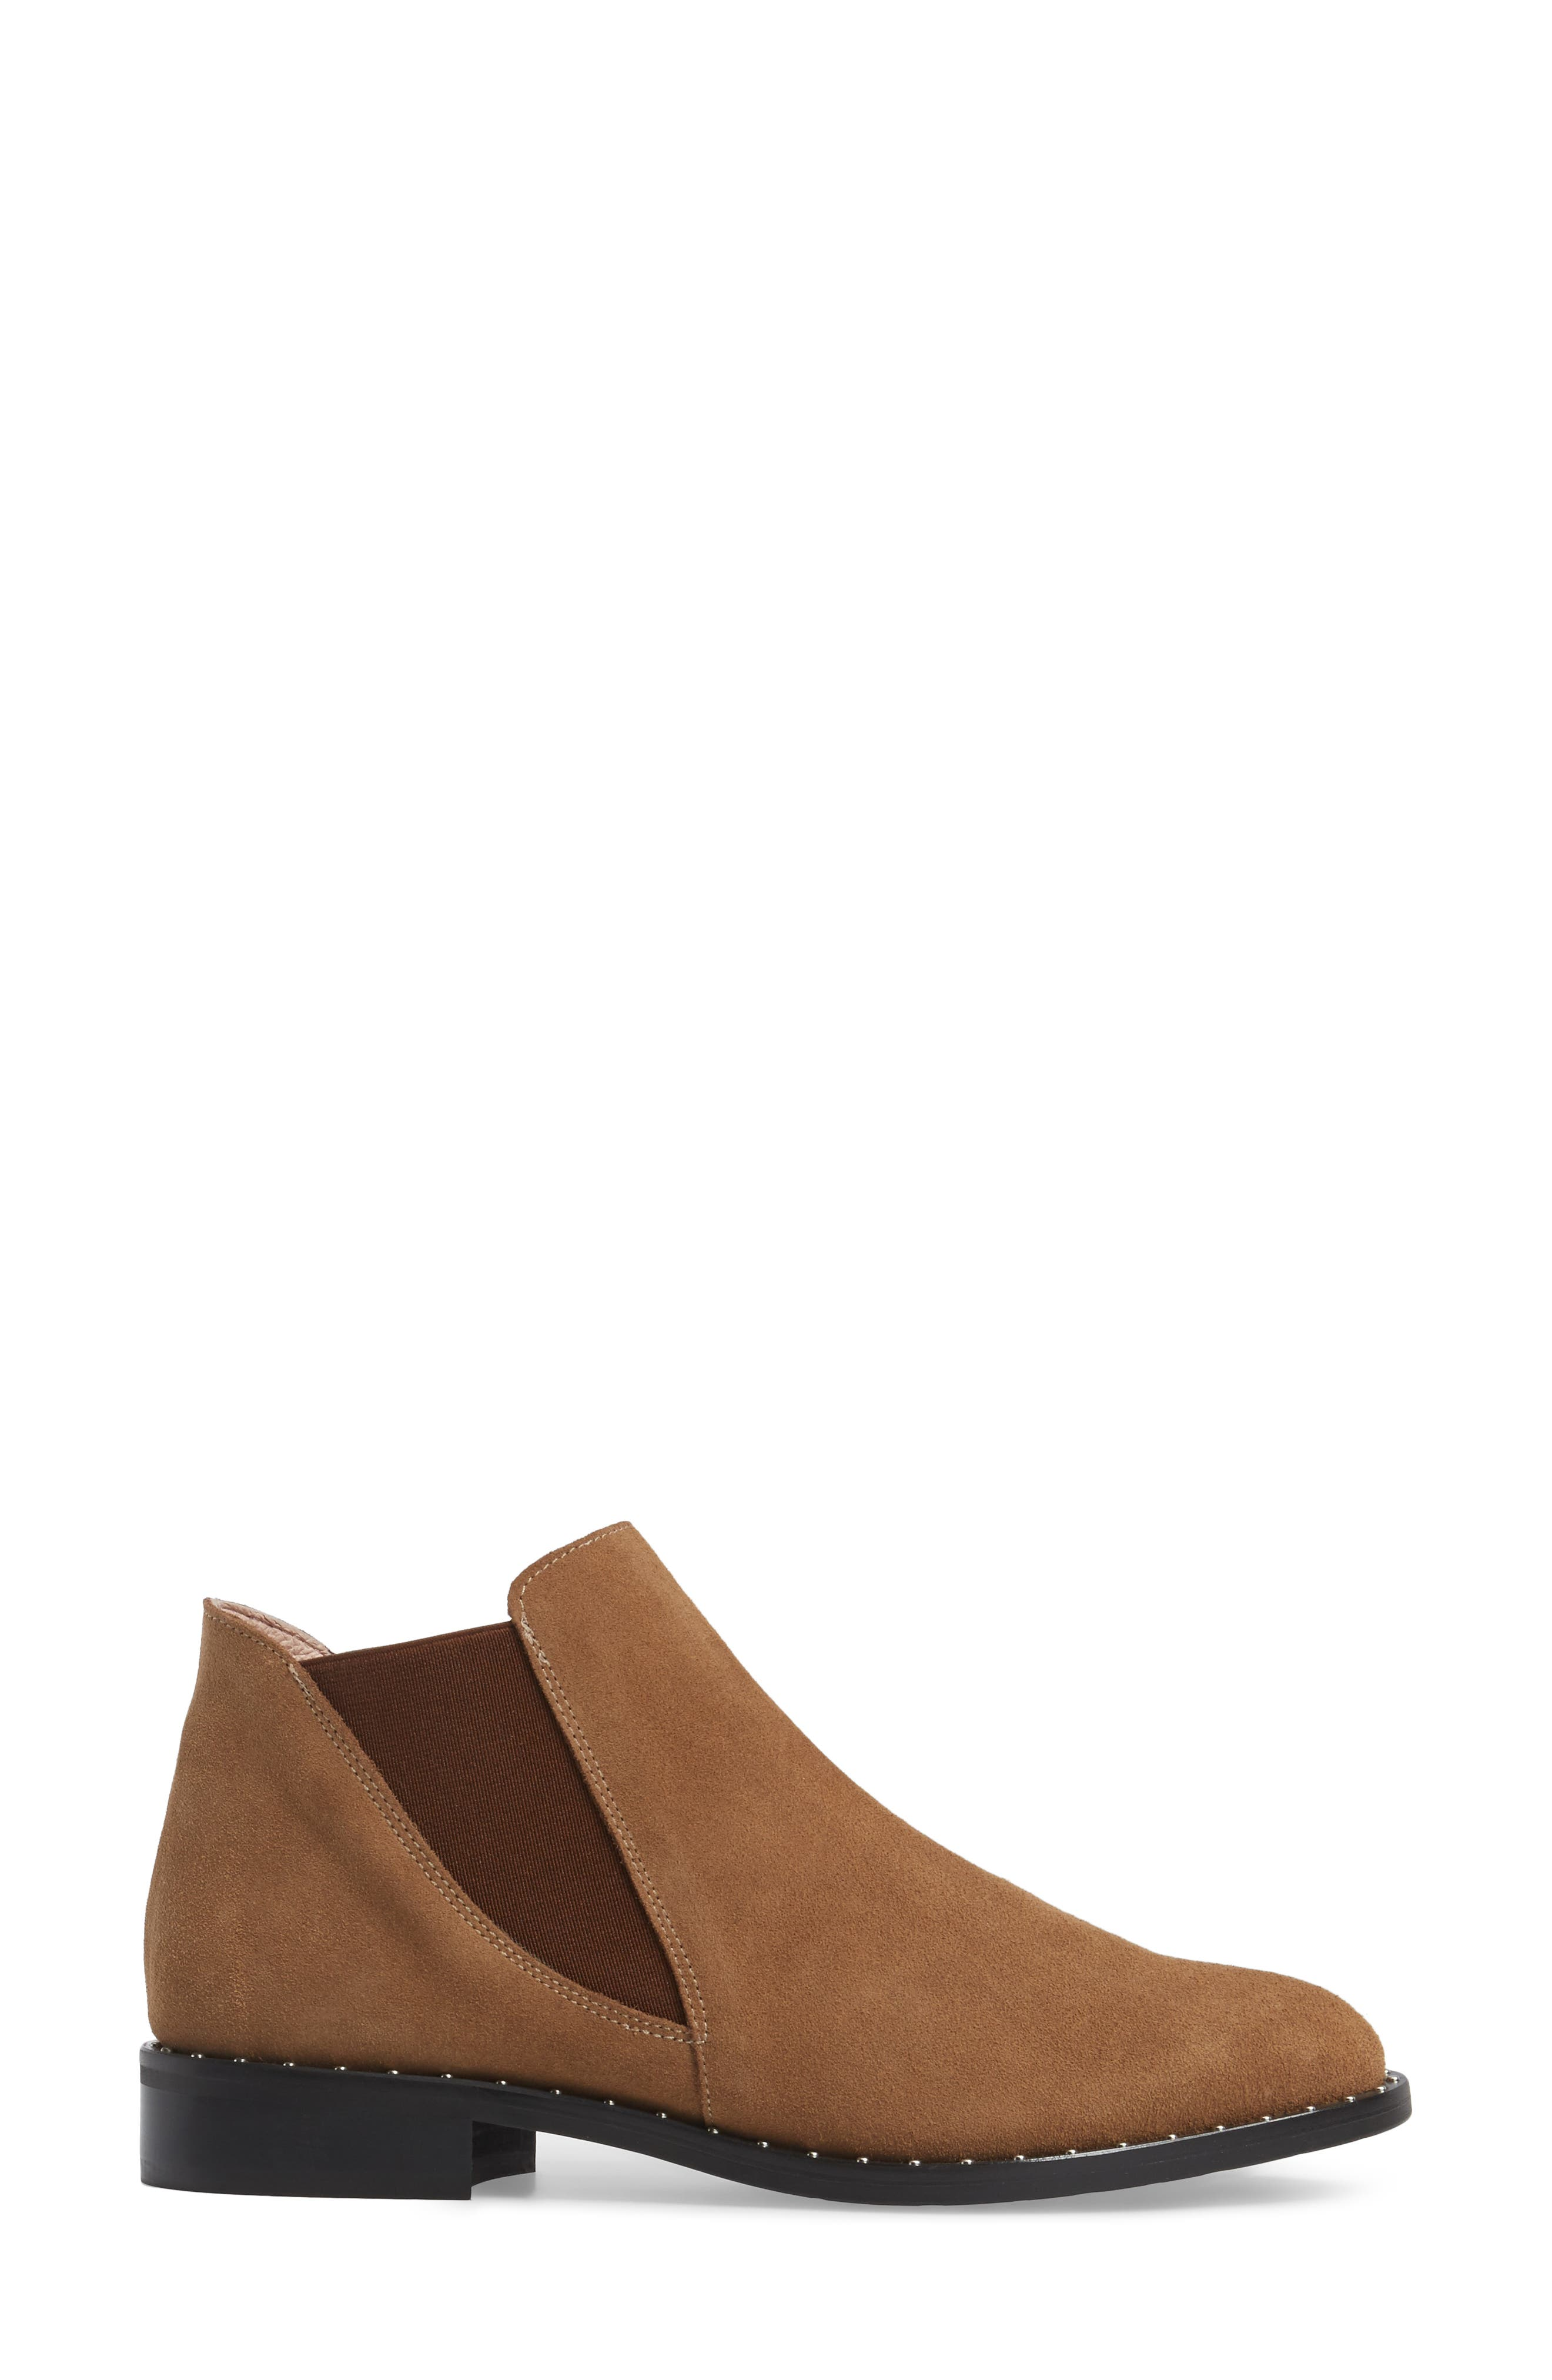 Alternate Image 3  - patricia green Palma Chelsea Boot (Women)